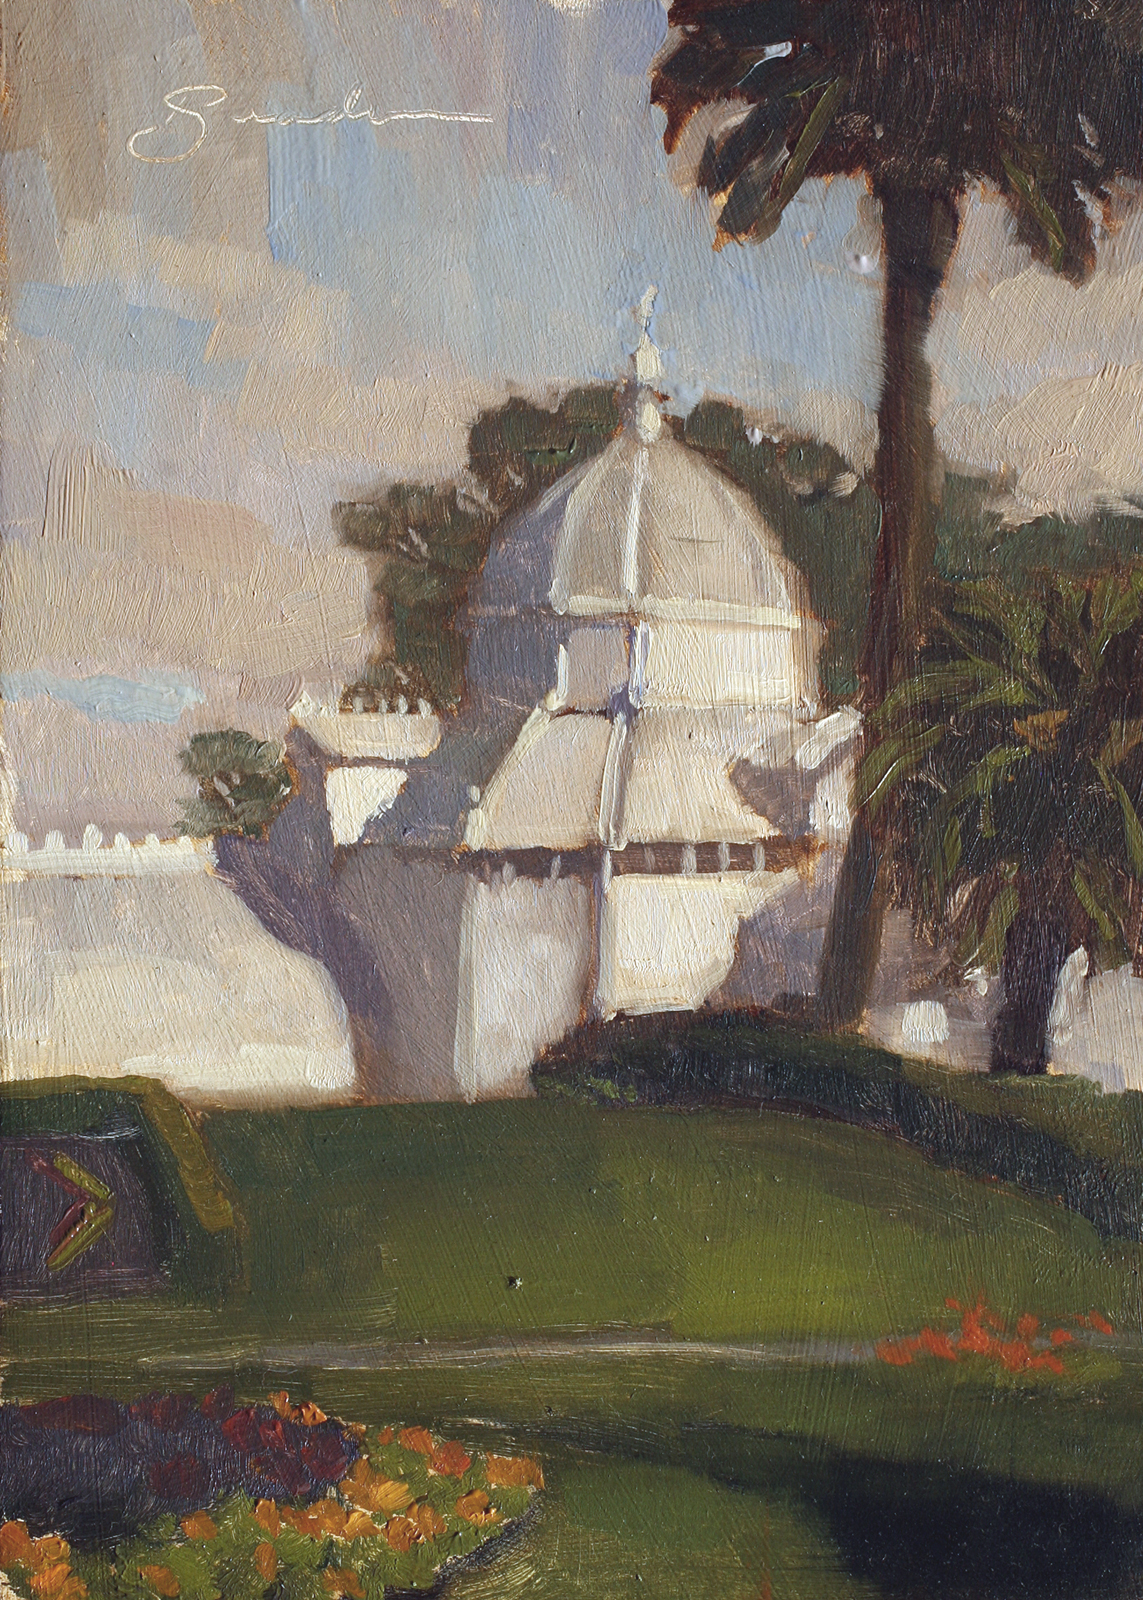 Conservatory of Flowers Study